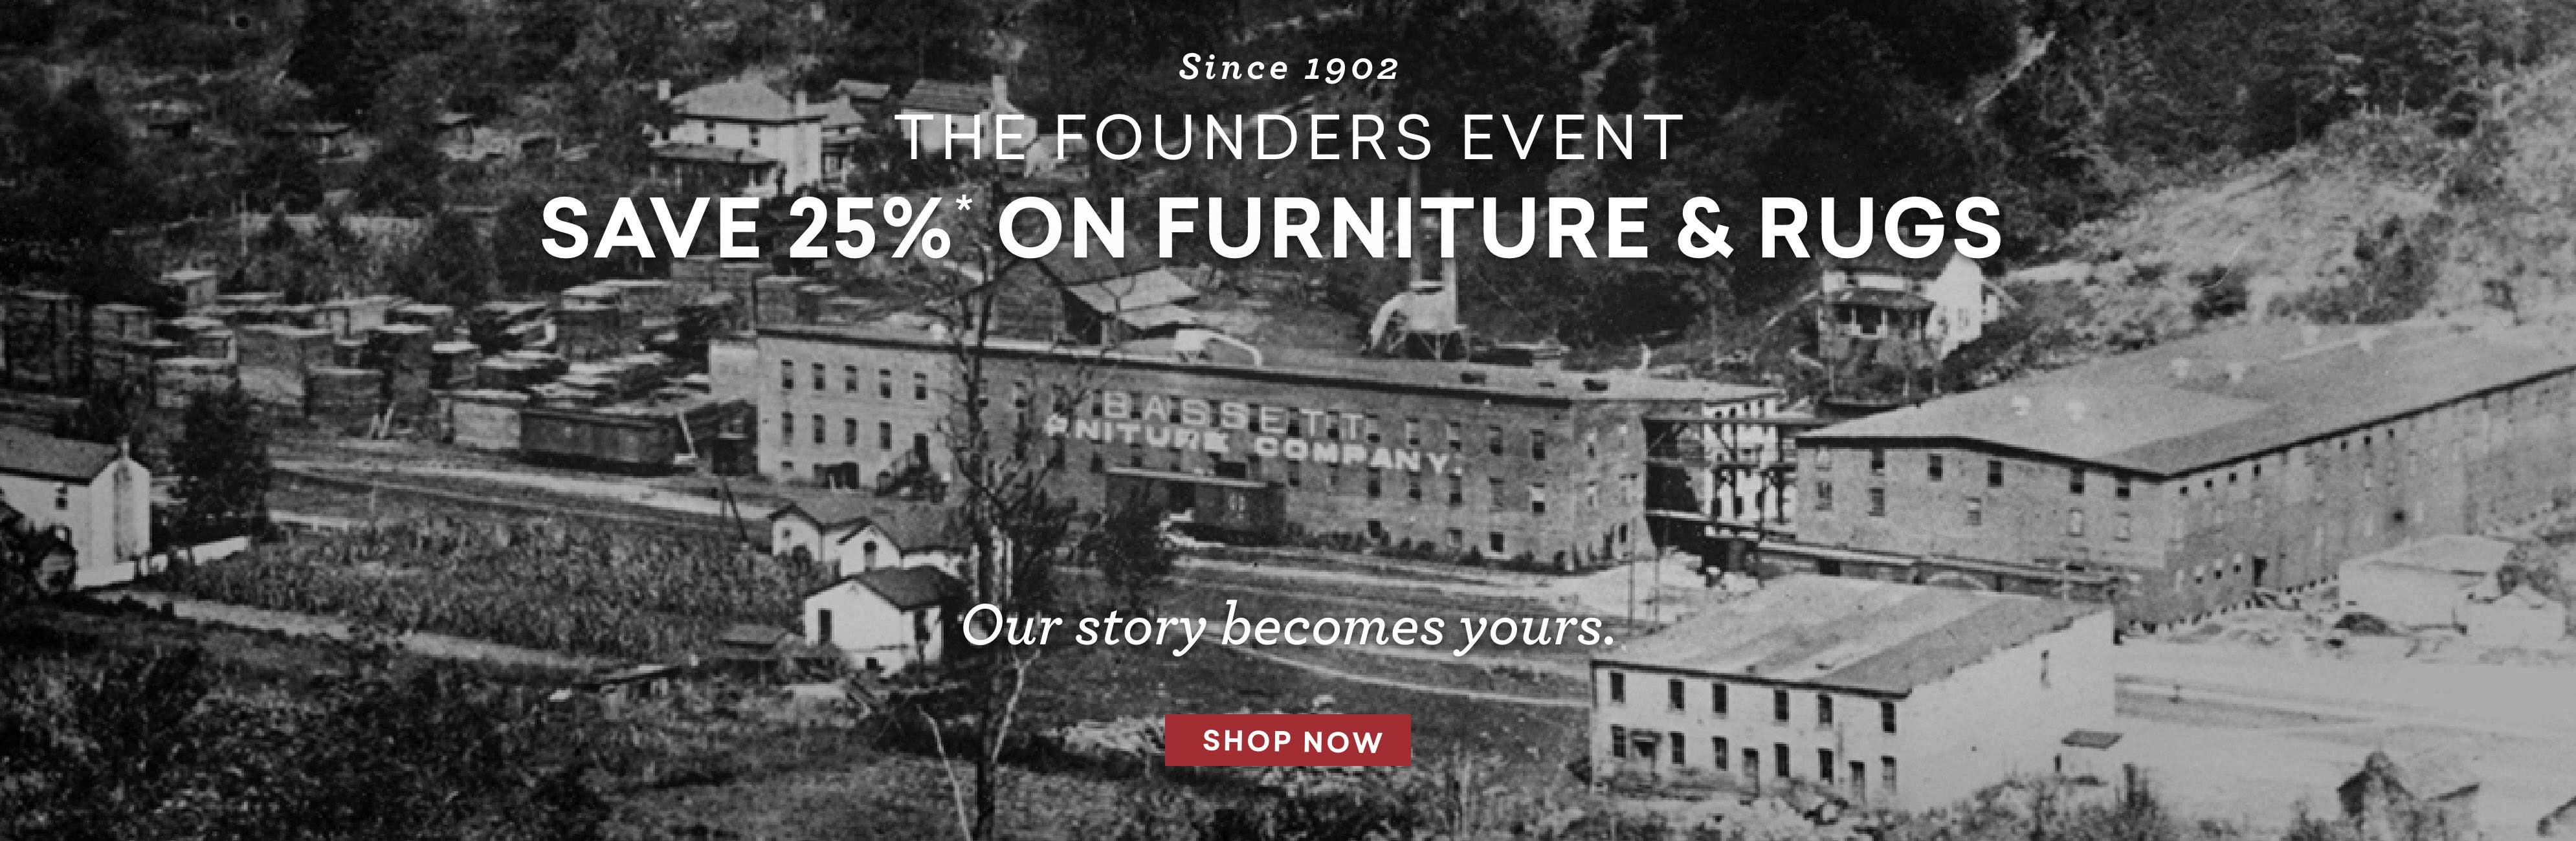 the founders event save 25% off furniture and rugs Desktop